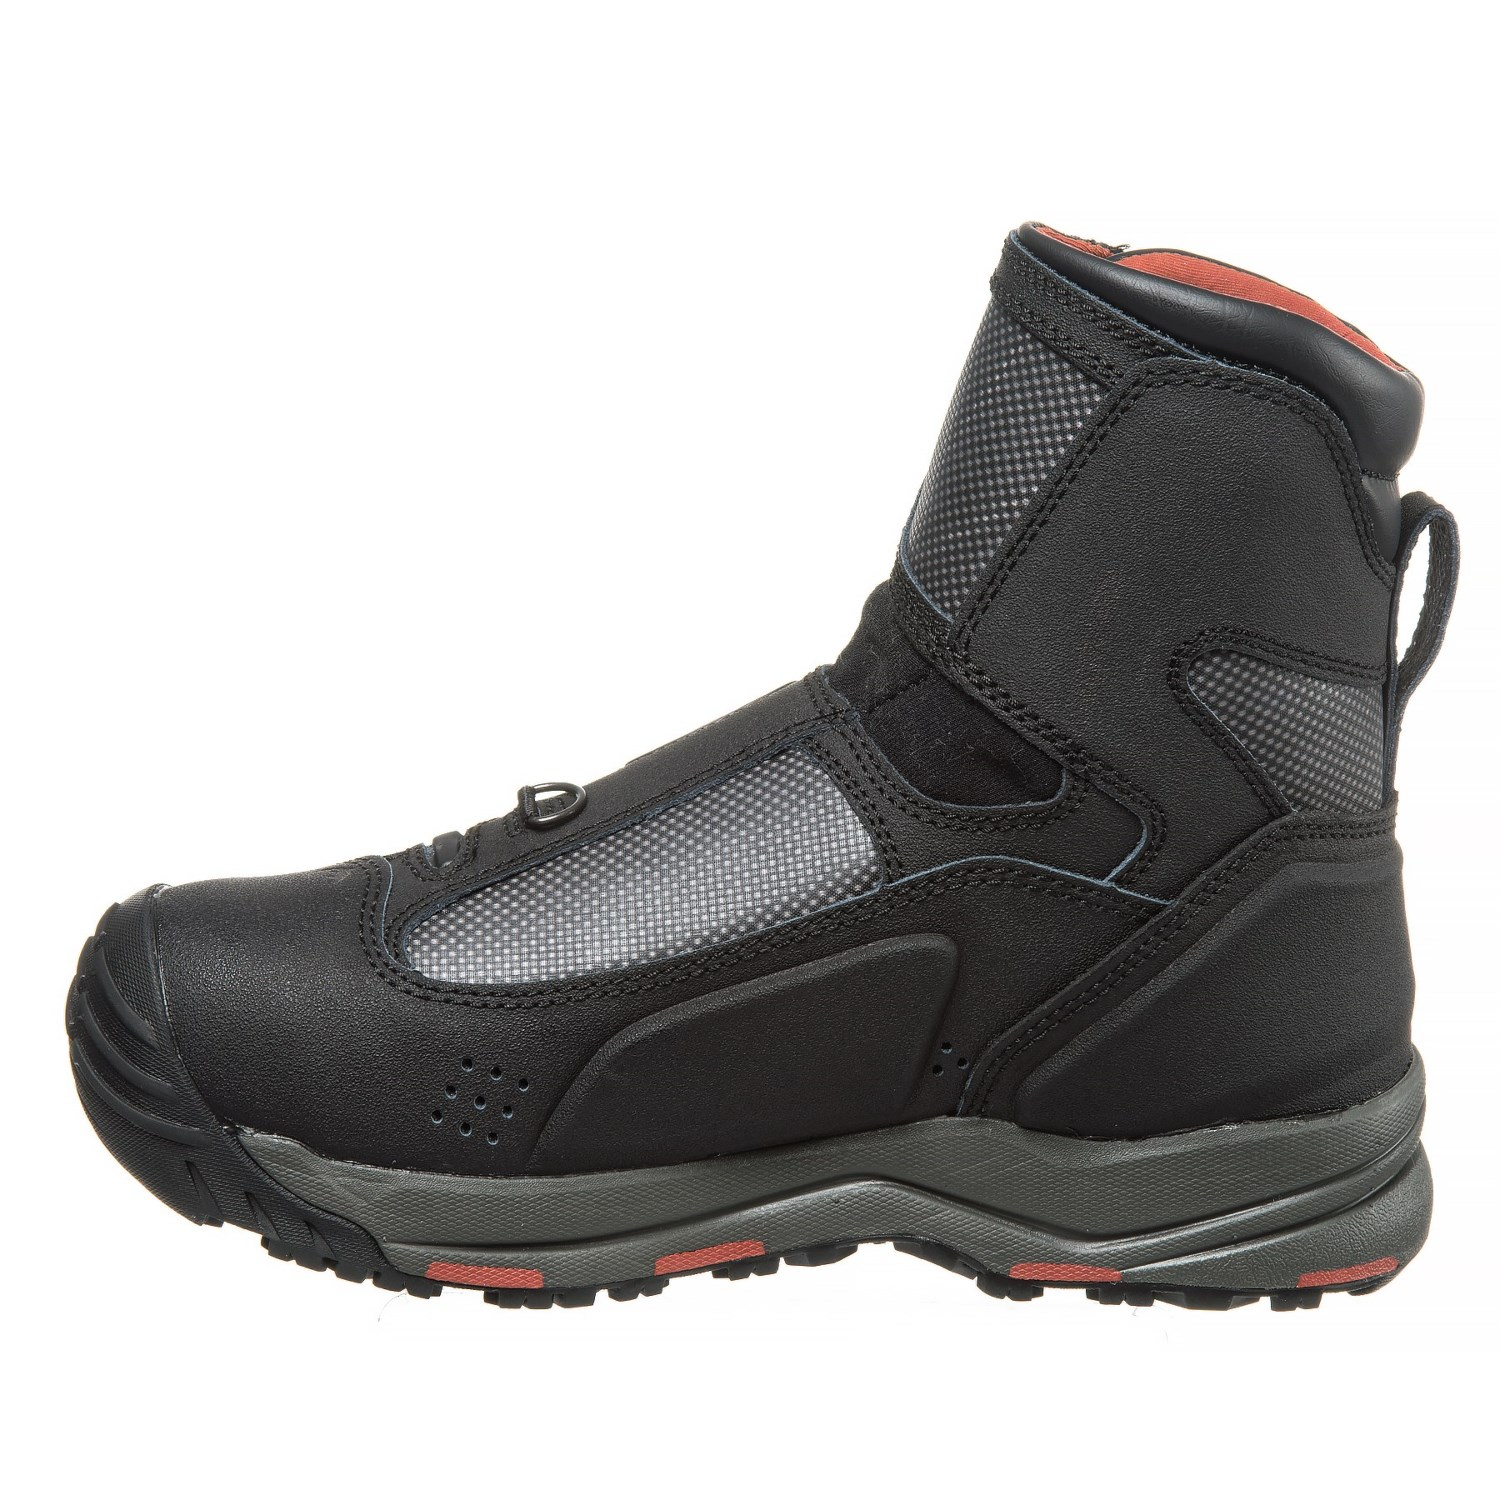 Simms G4 Boar Wading Boots For Men Save 56